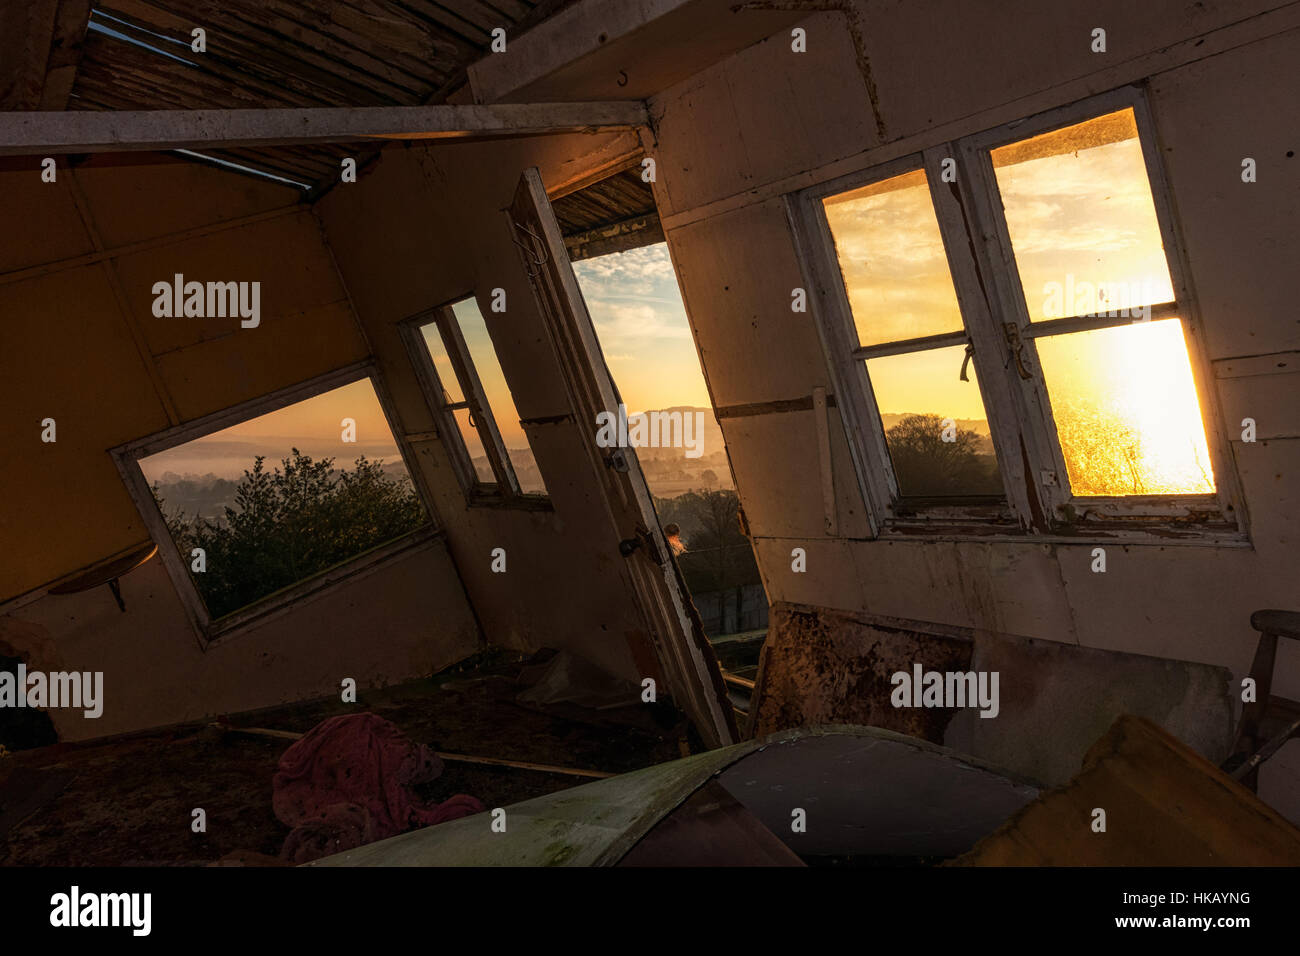 Derelict summerhouse in Yorkshire, UK - Stock Image